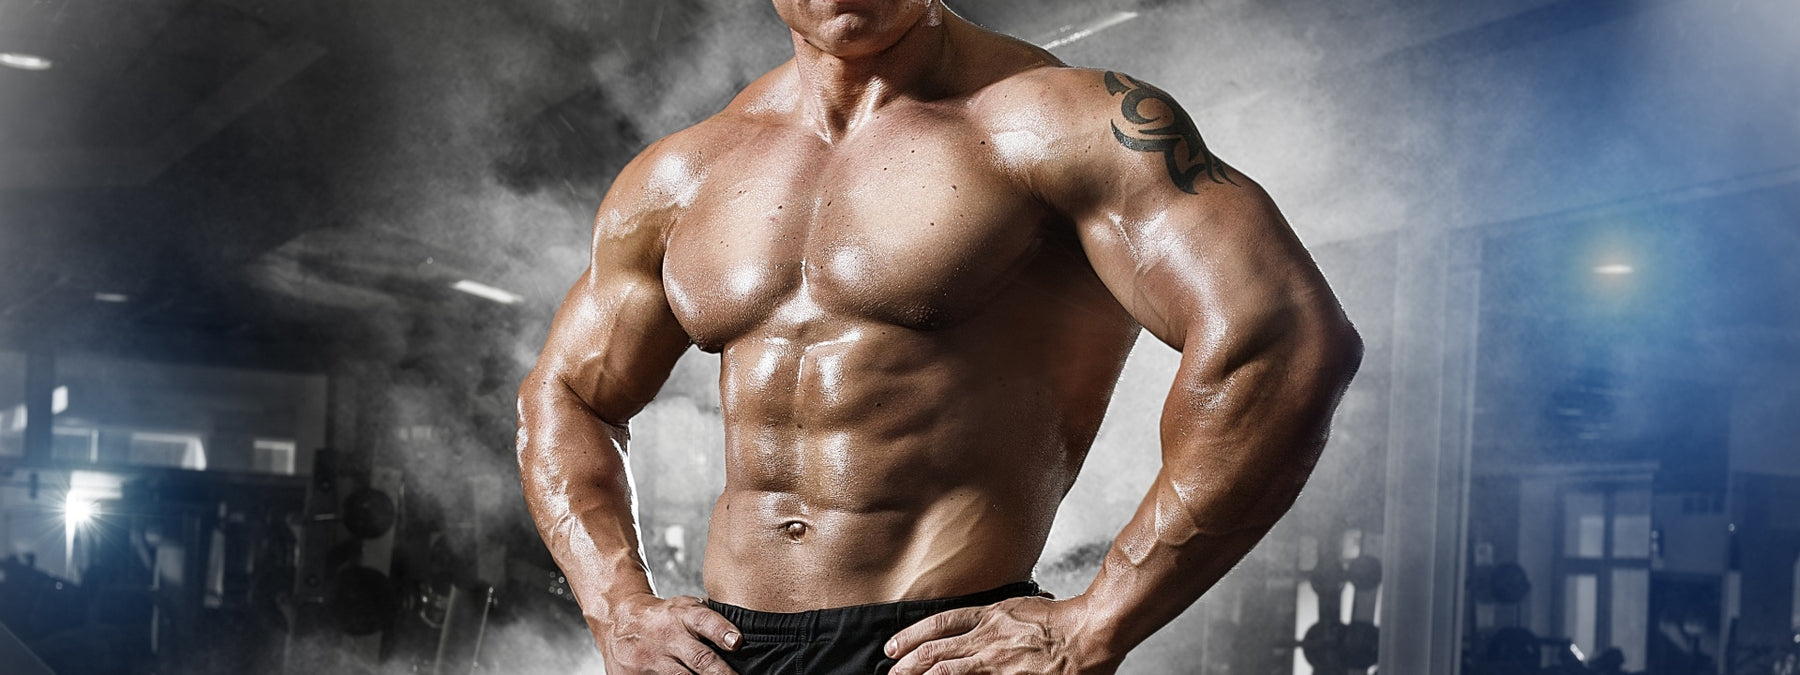 5 Best Chest Exercises You've Never Heard Of